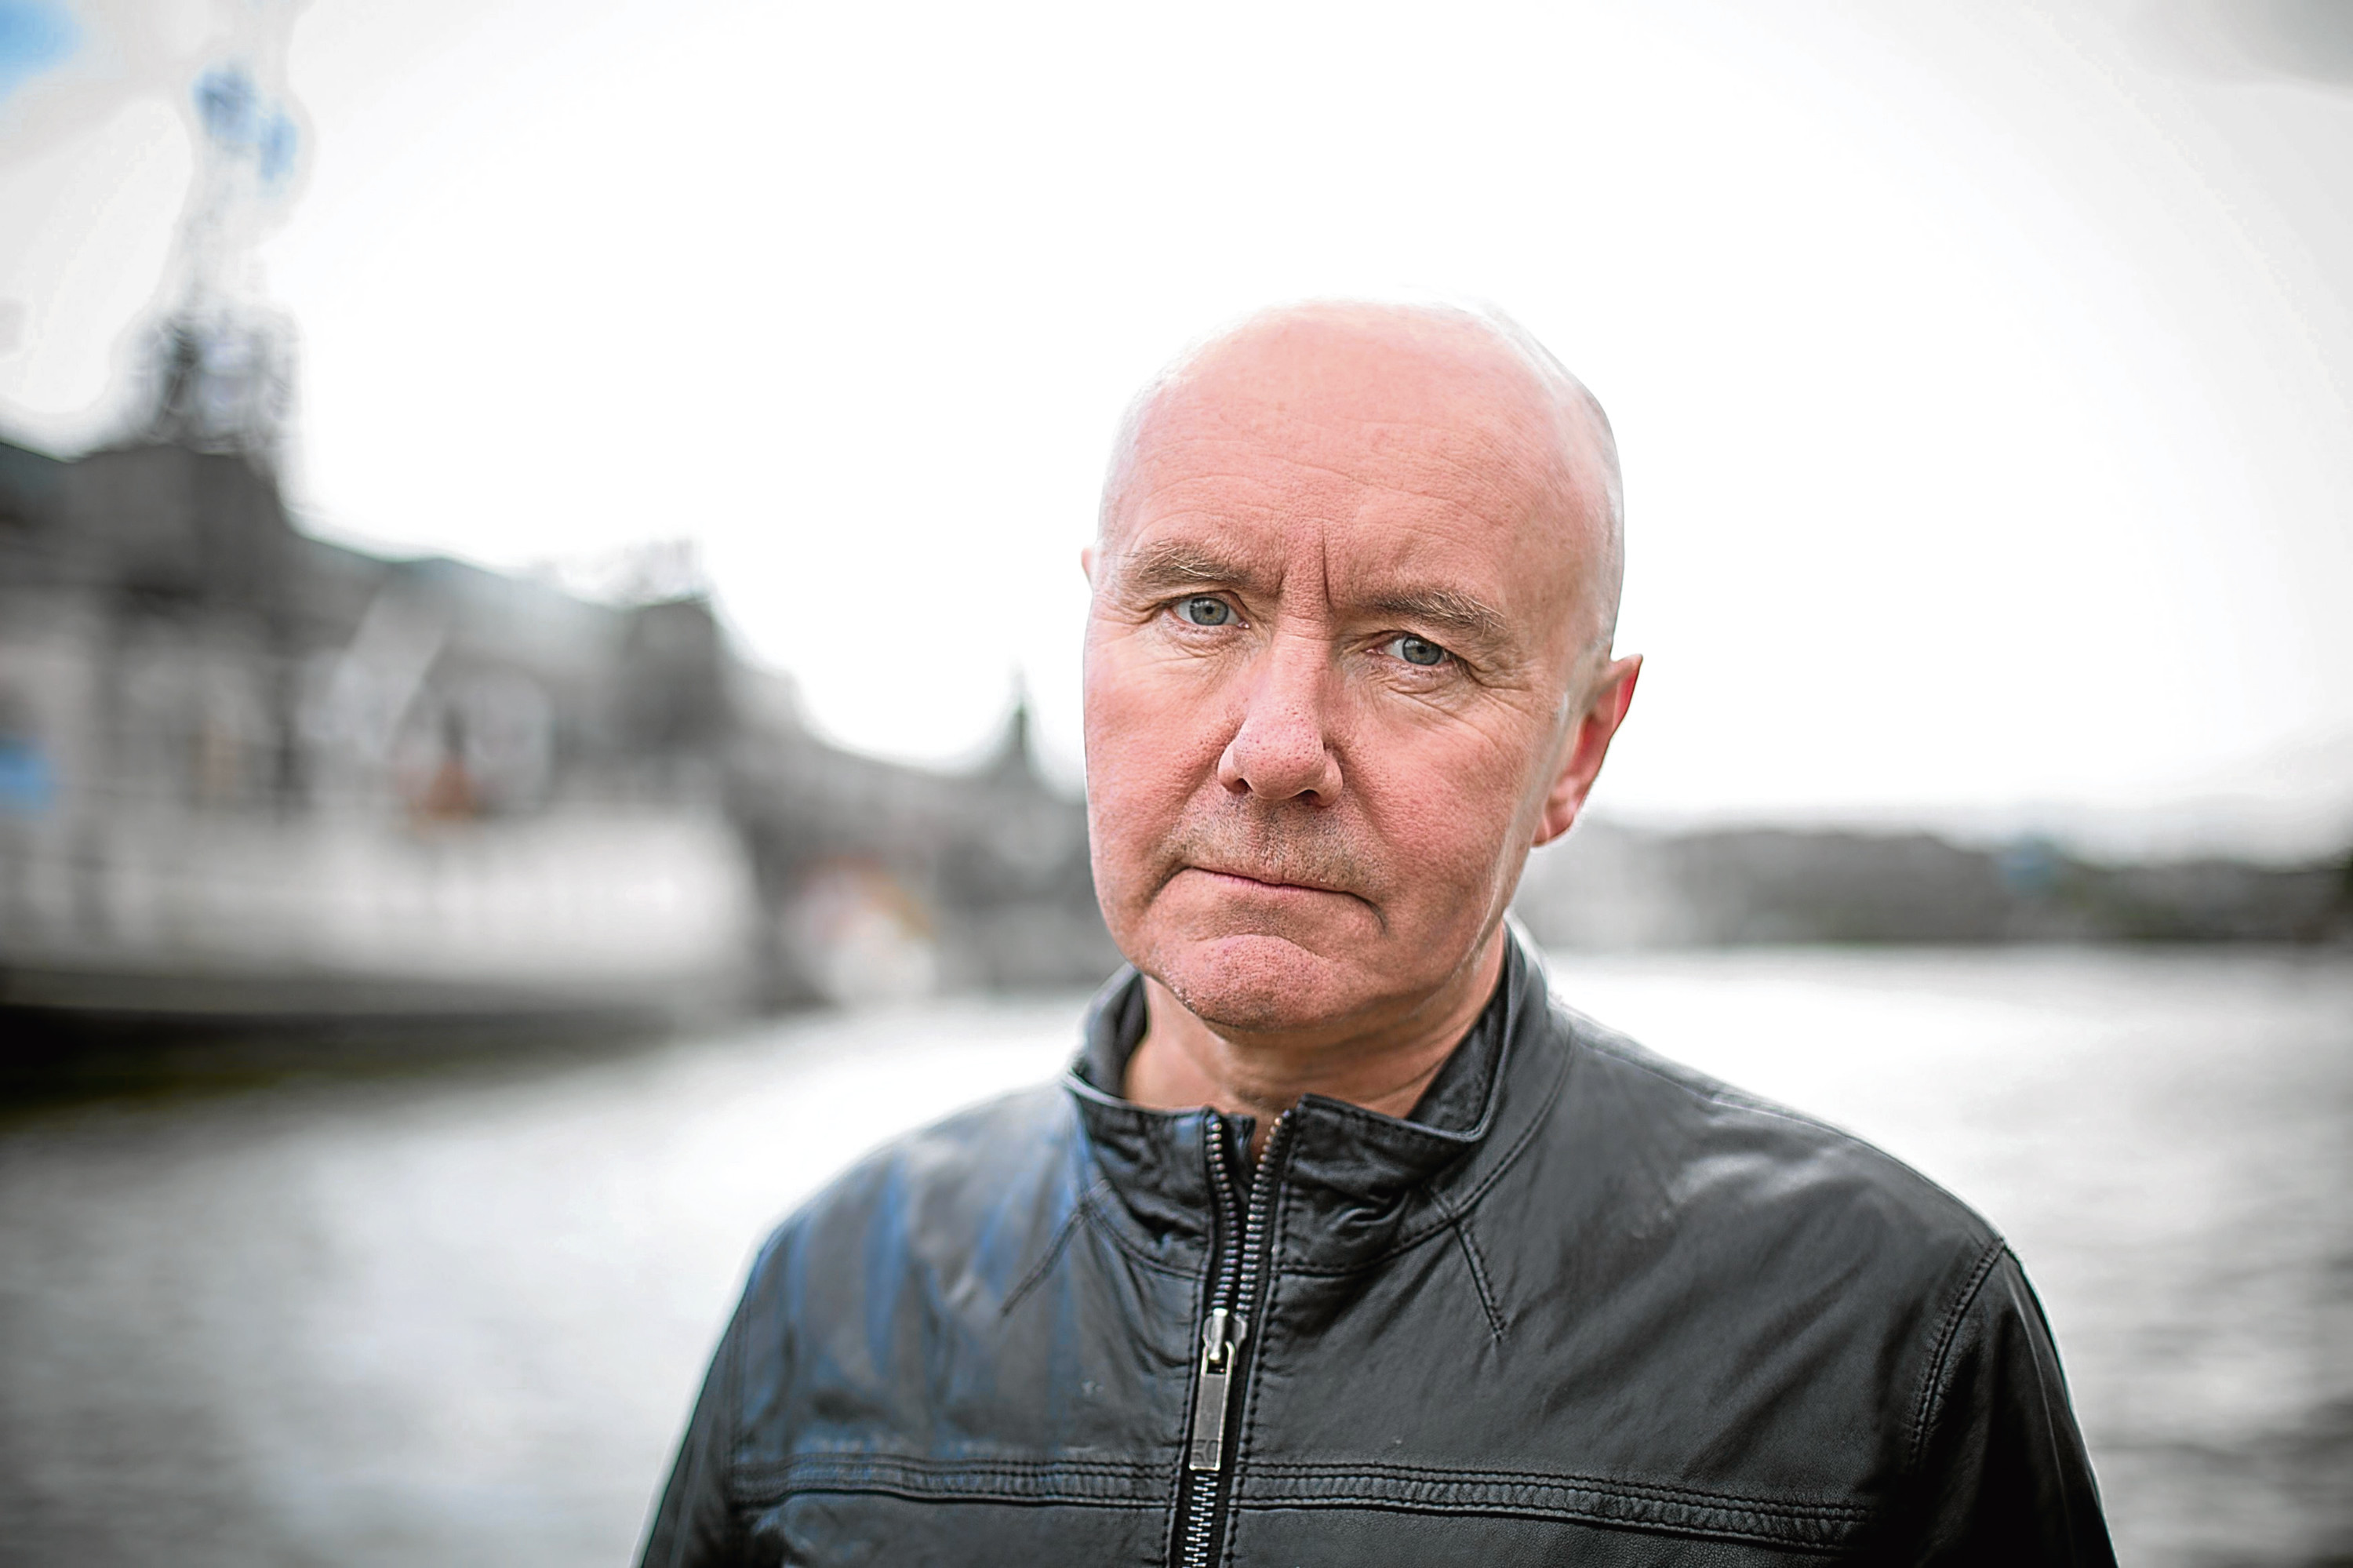 Irvine Welsh, novelist, playwright and short story writer (SWNS/HE Media)